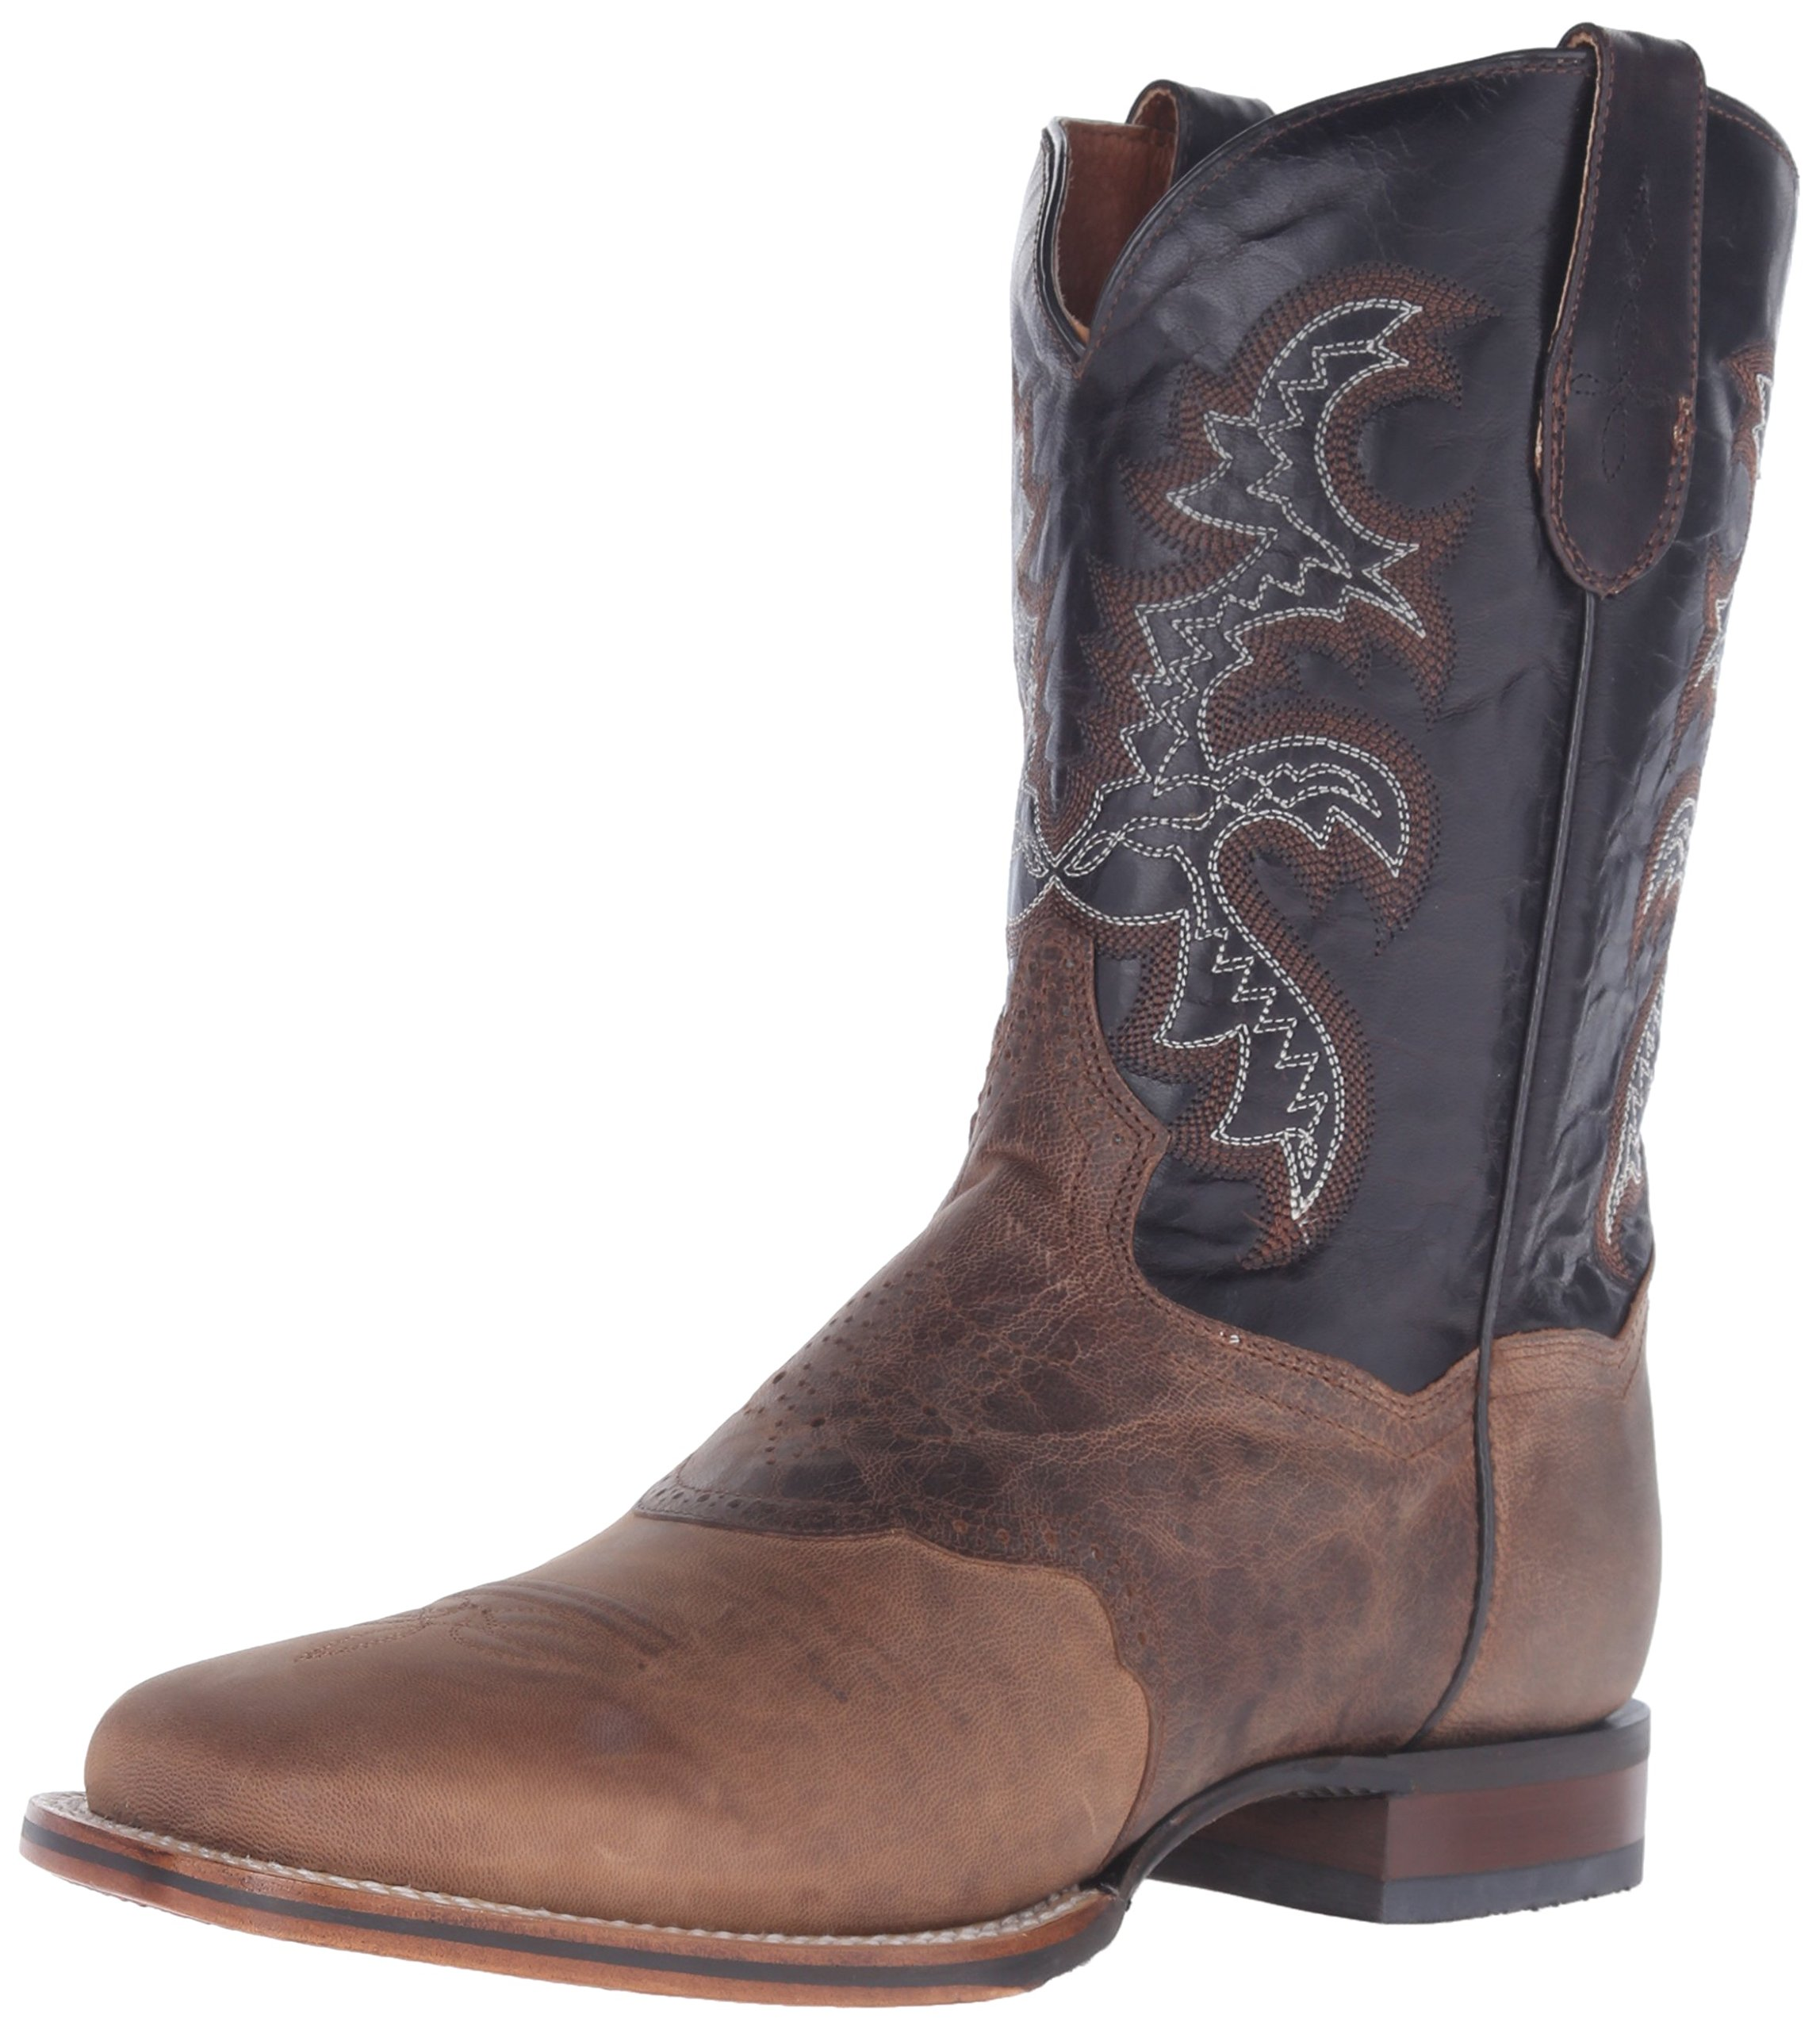 Dan Post Men's Franklin Western Boot,Sand,11 EW US